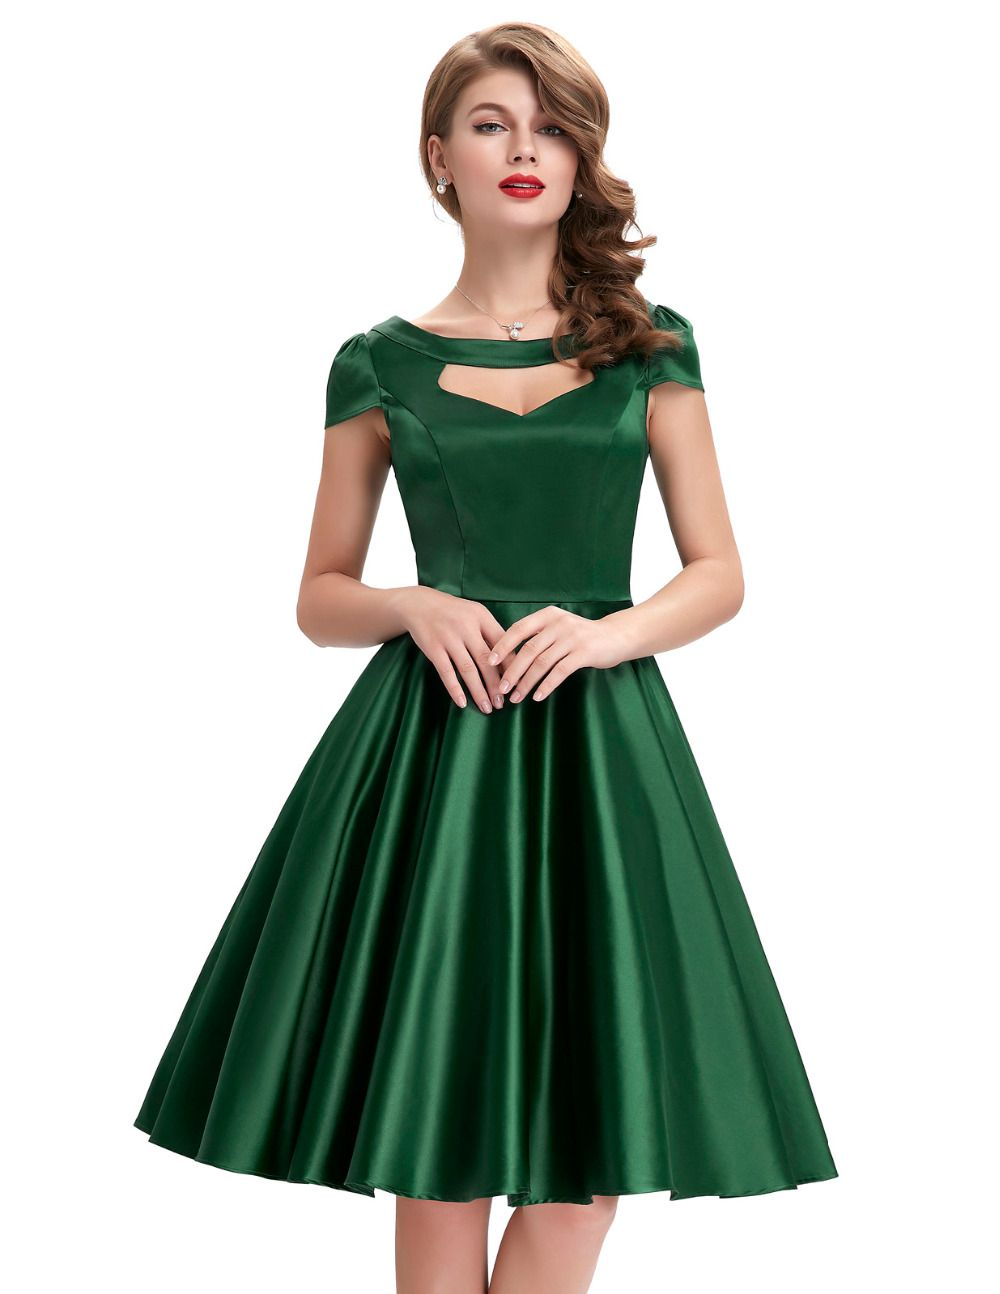 Cheap dress crease buy quality dress arabic directly from china